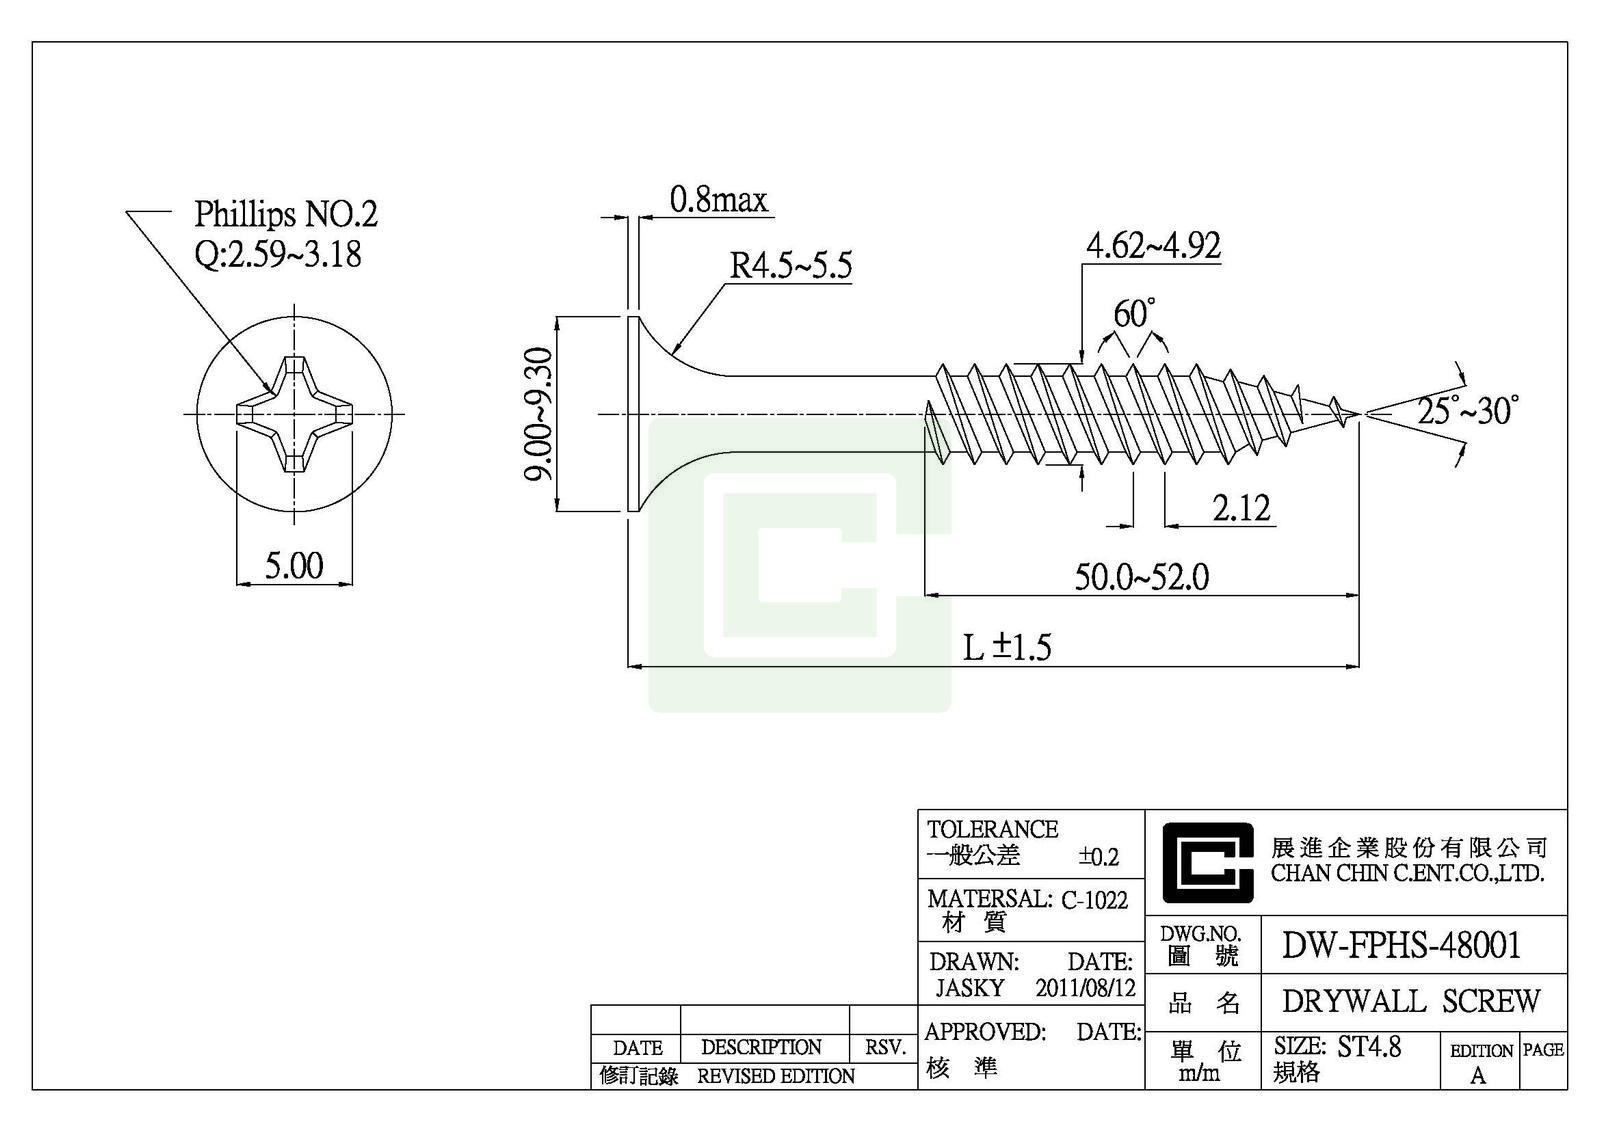 Drywall screw | Screw Manufacturers - Chan Chin C